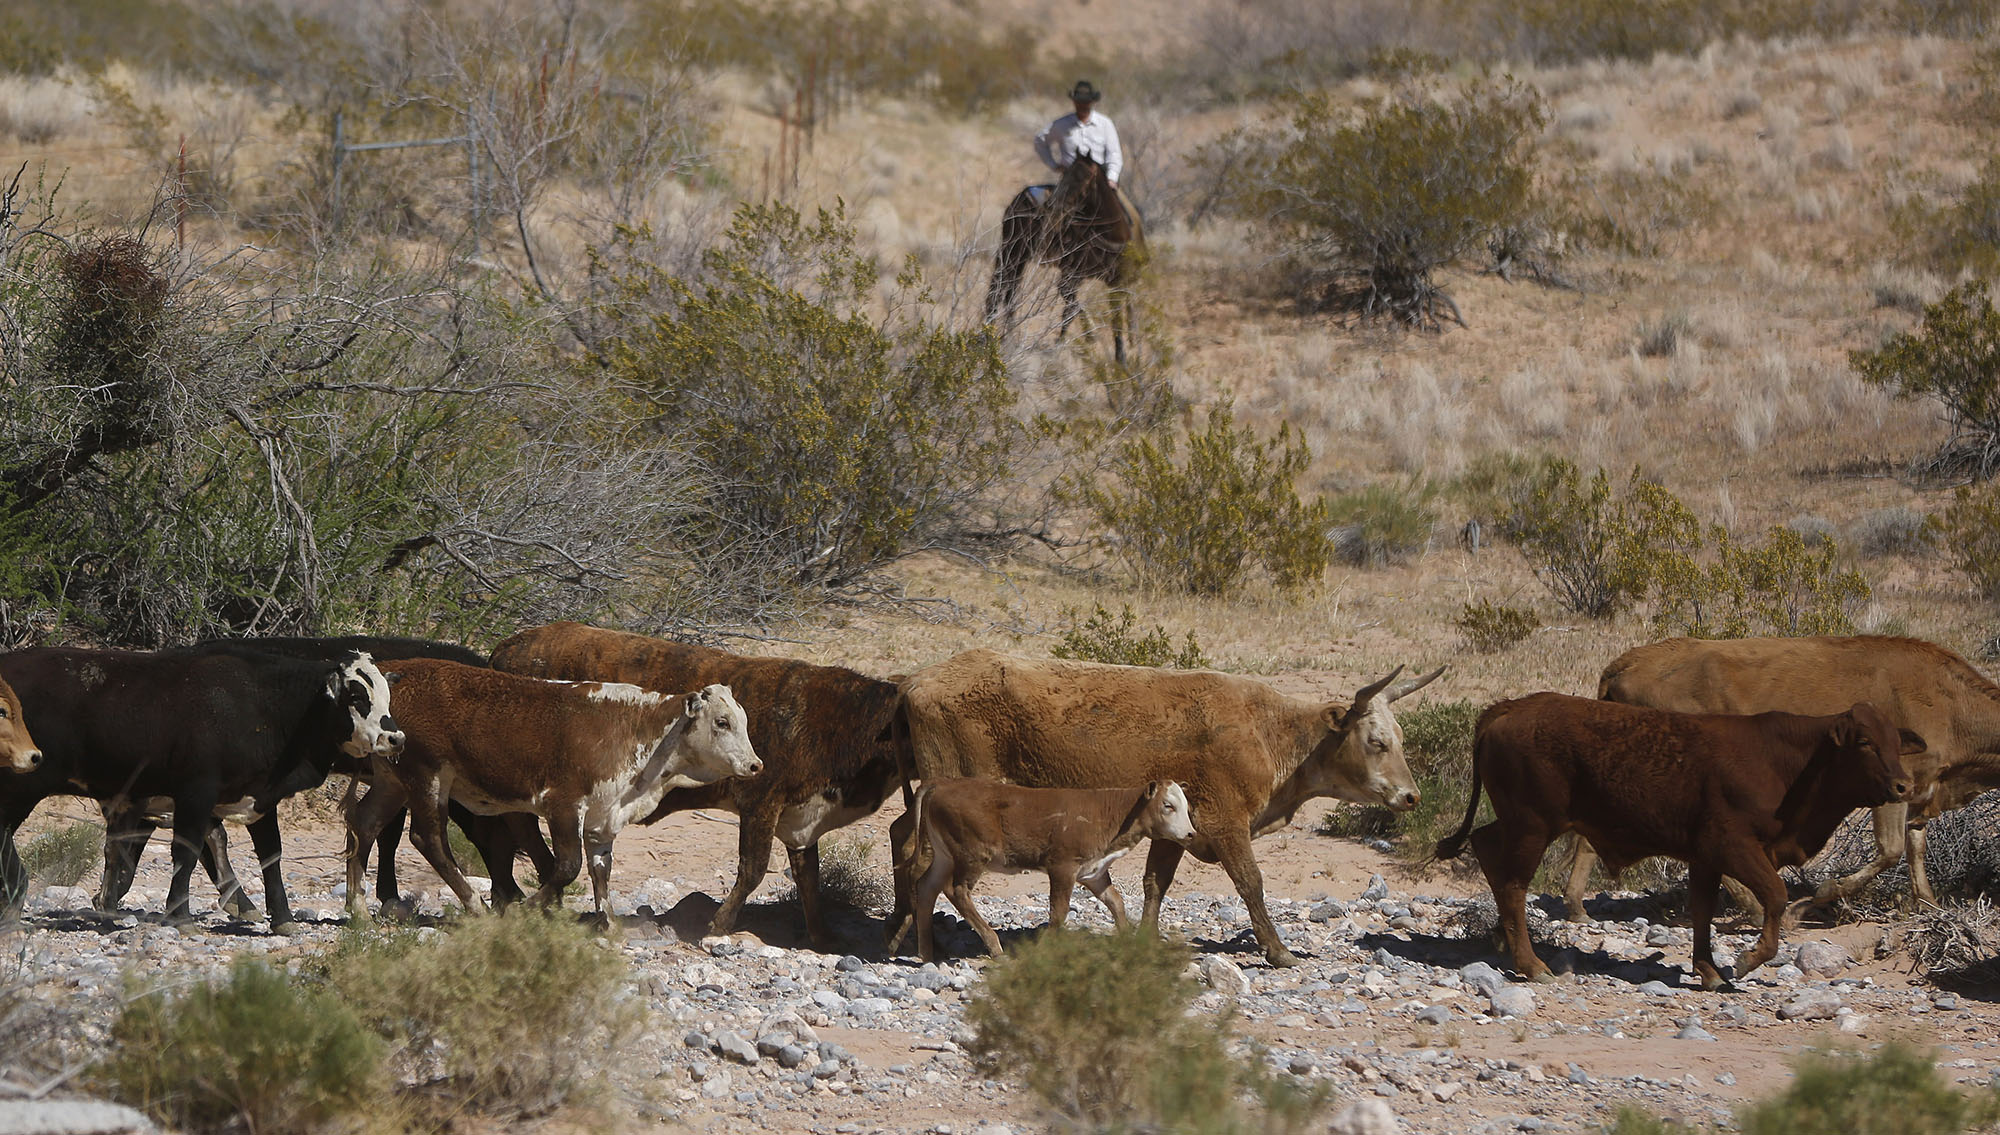 Cattle that belongs to rancher Cliven Bundy are released near Bunkerville, Nevada April 12,